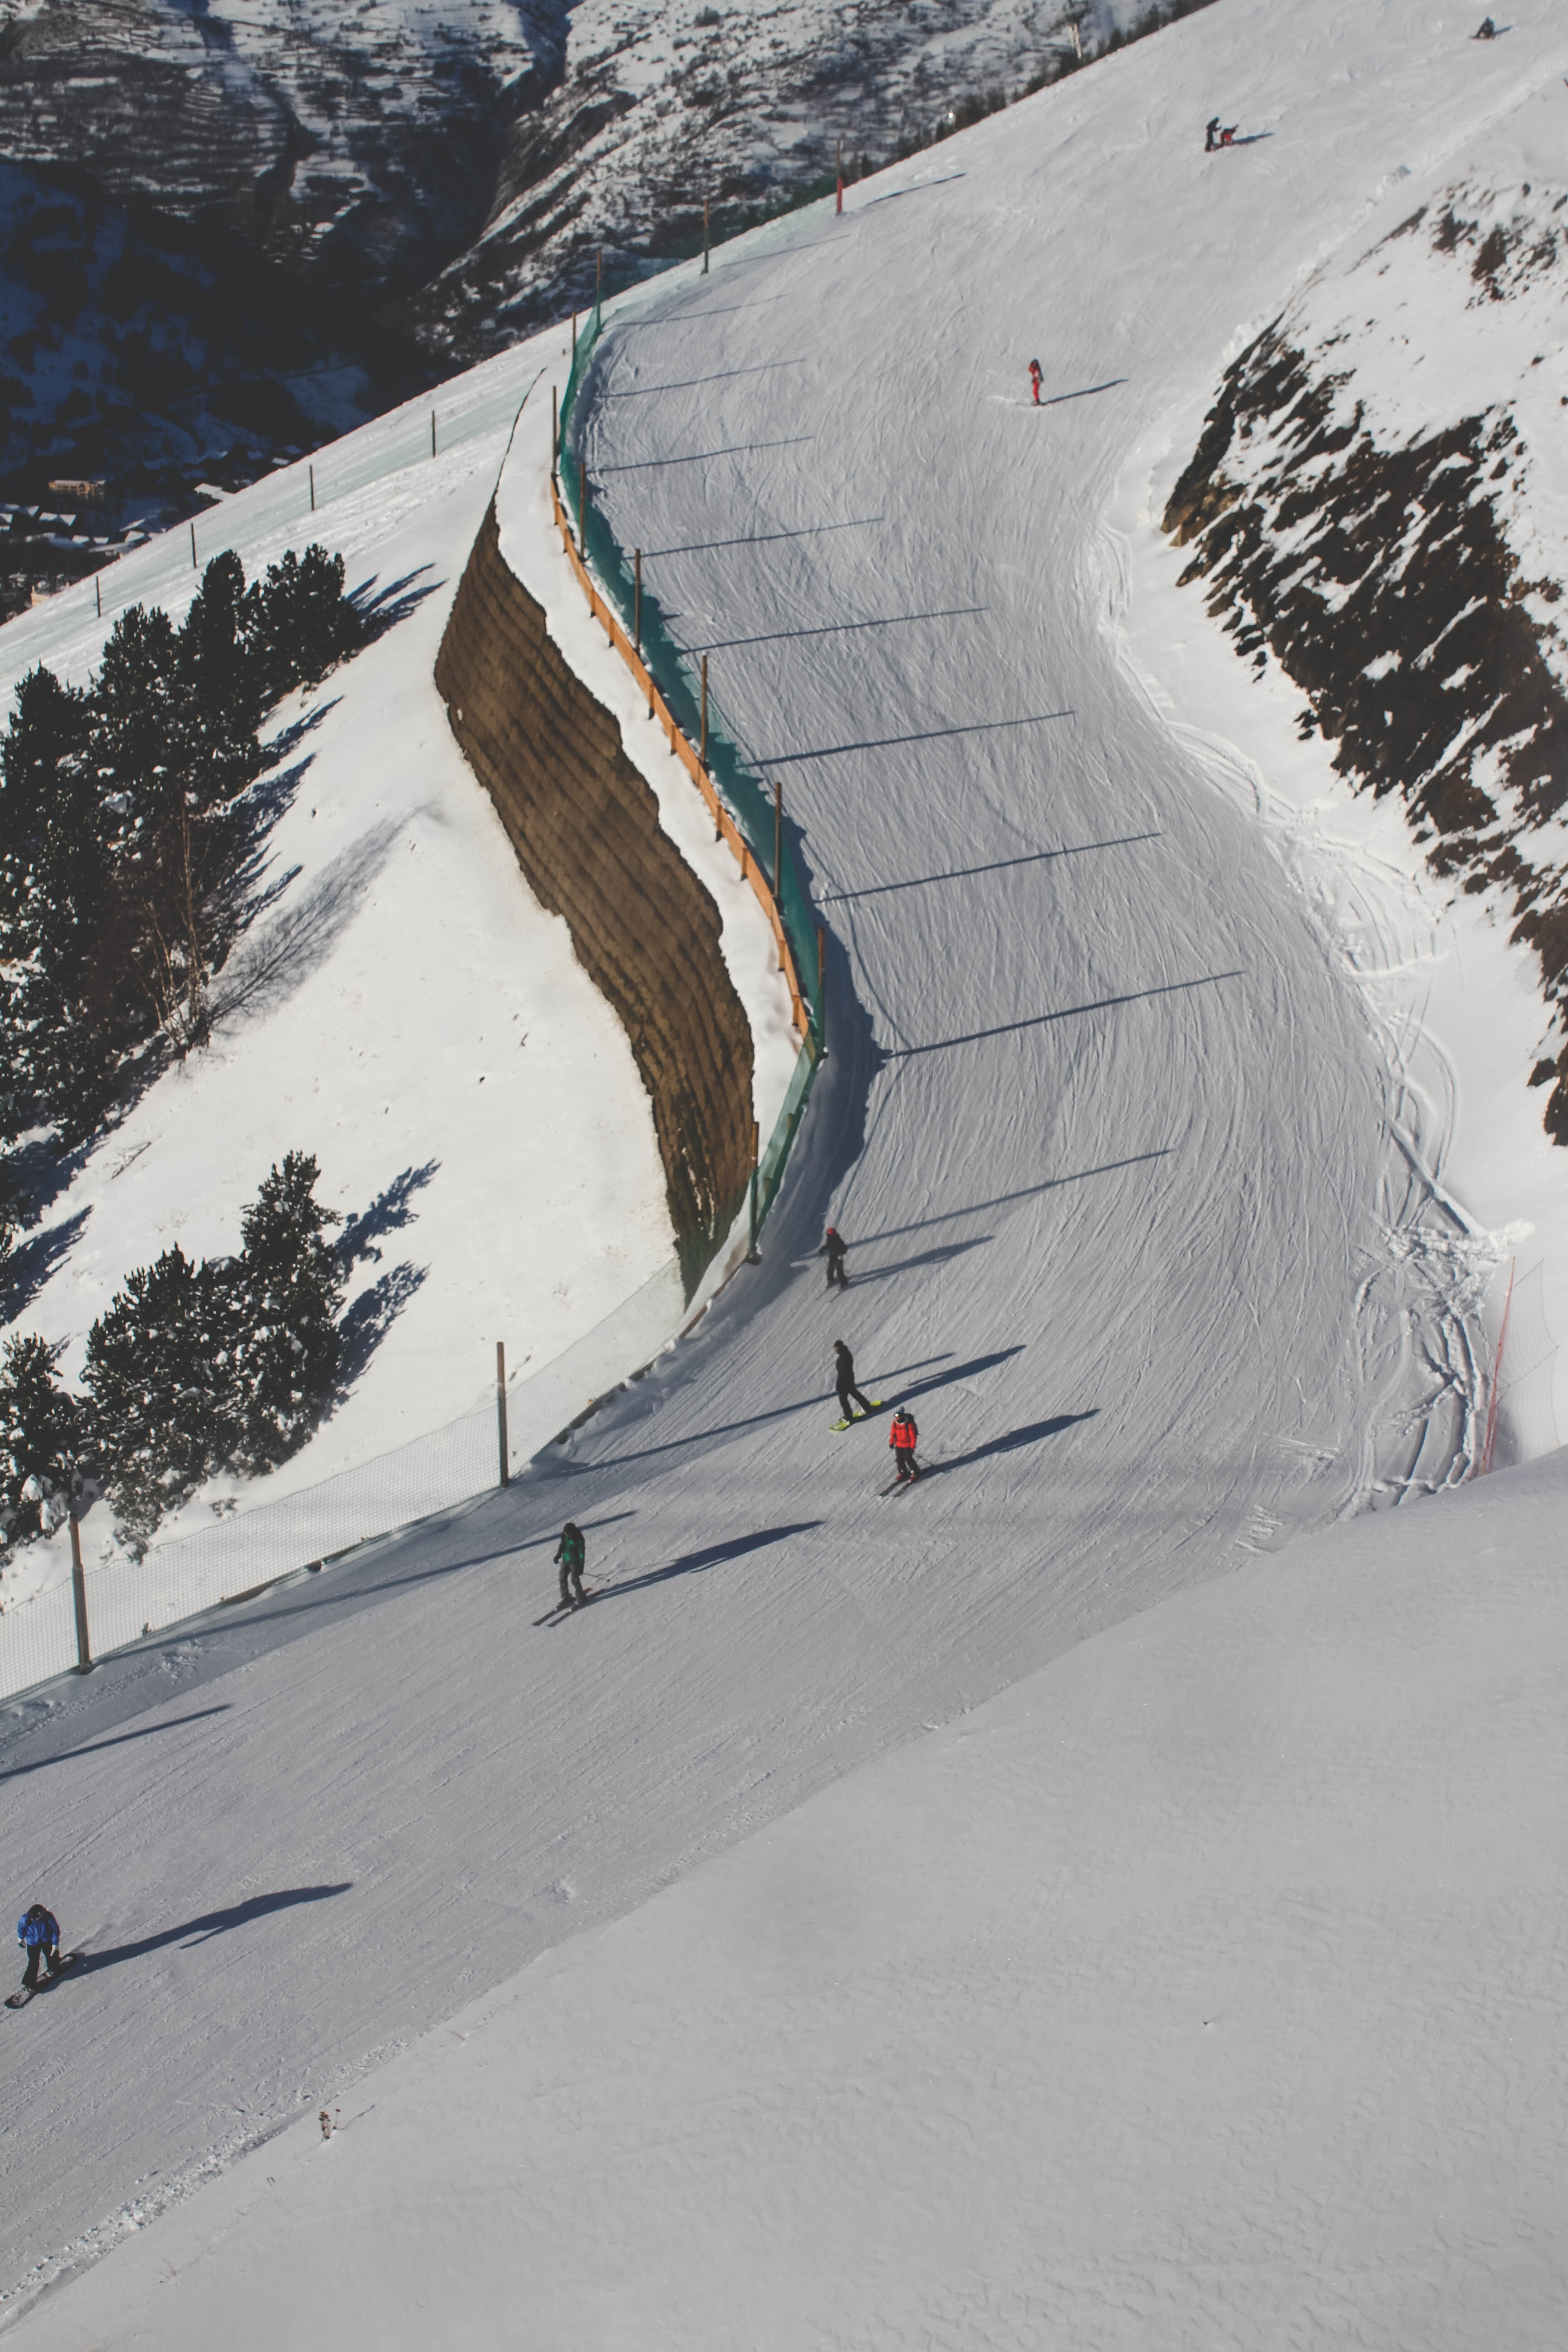 A steep slope on a ski mountain going down a France ski resort, Les 2 Alpes